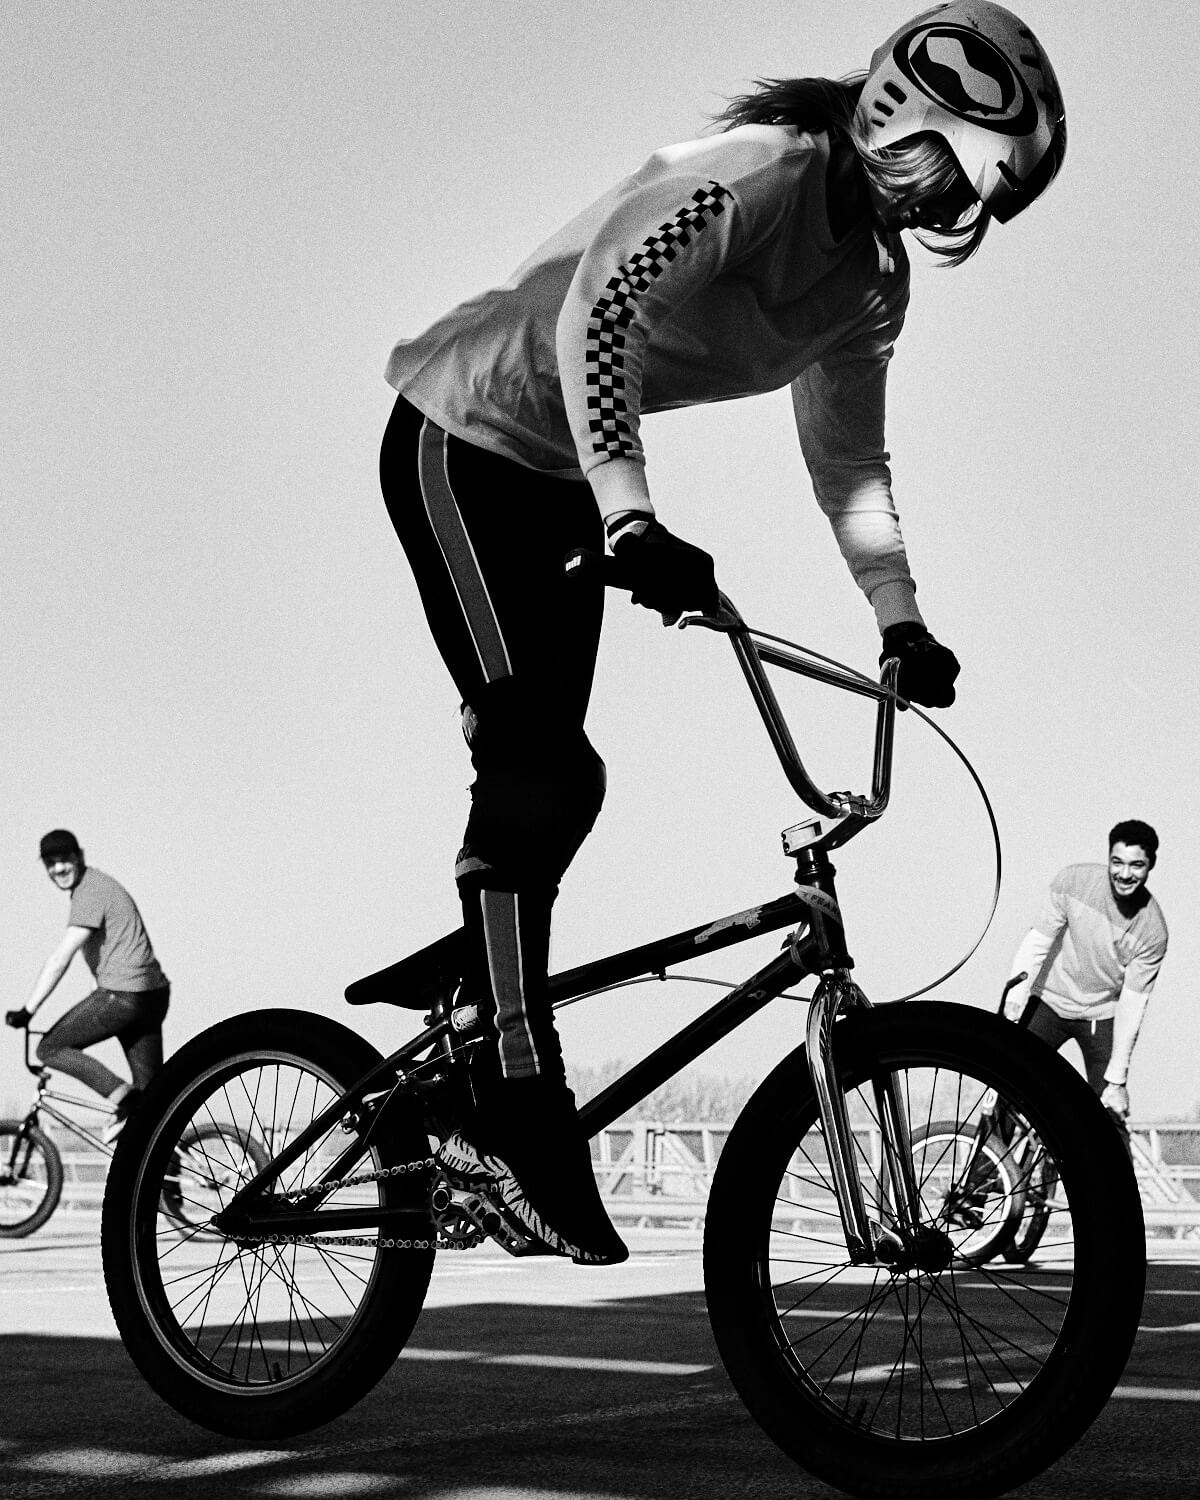 B/W, Gen Z girl silhouette, BMX clothes, rides stunt street bike by lifestyle photographer Tim Cole